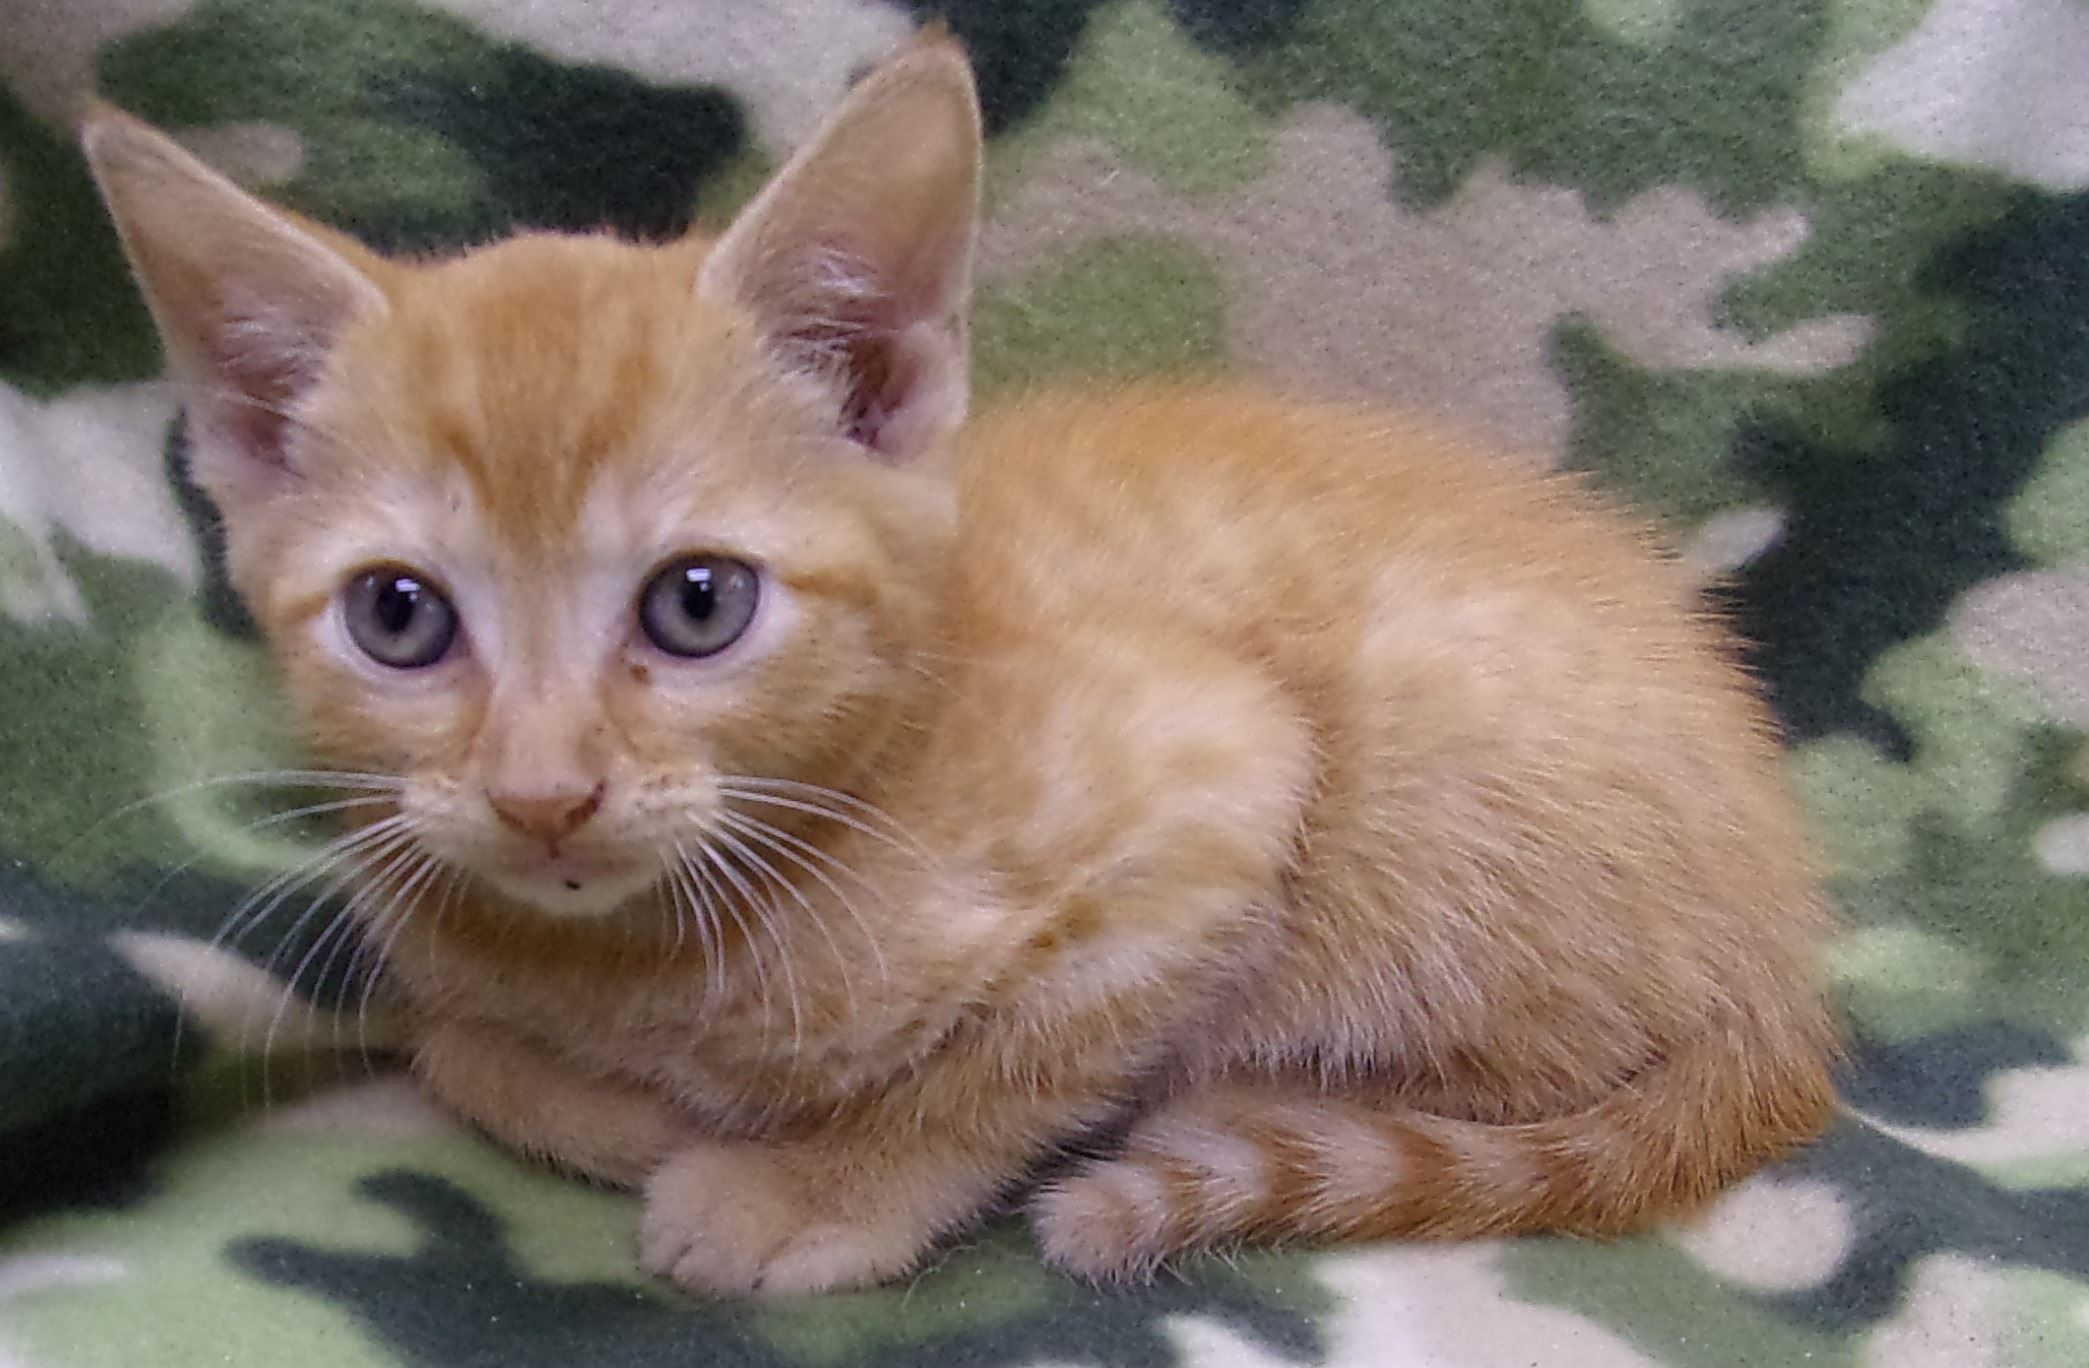 19-282 Quill orange/white striped male kitten